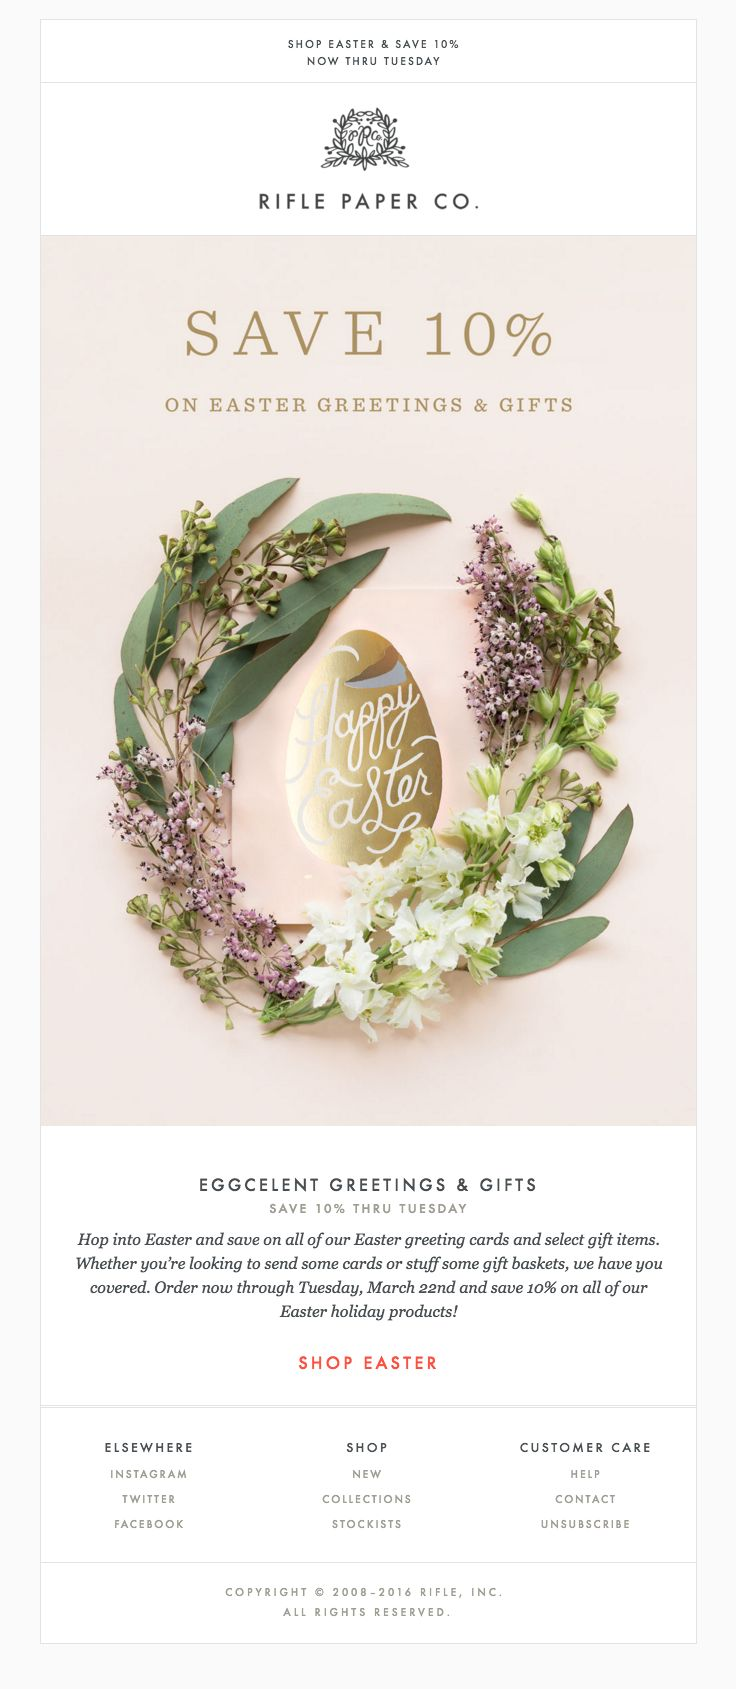 25 best easter newsletters images on pinterest email newsletter rifle paper co sent this email with the subject line eggcelent greetings gifts for negle Choice Image